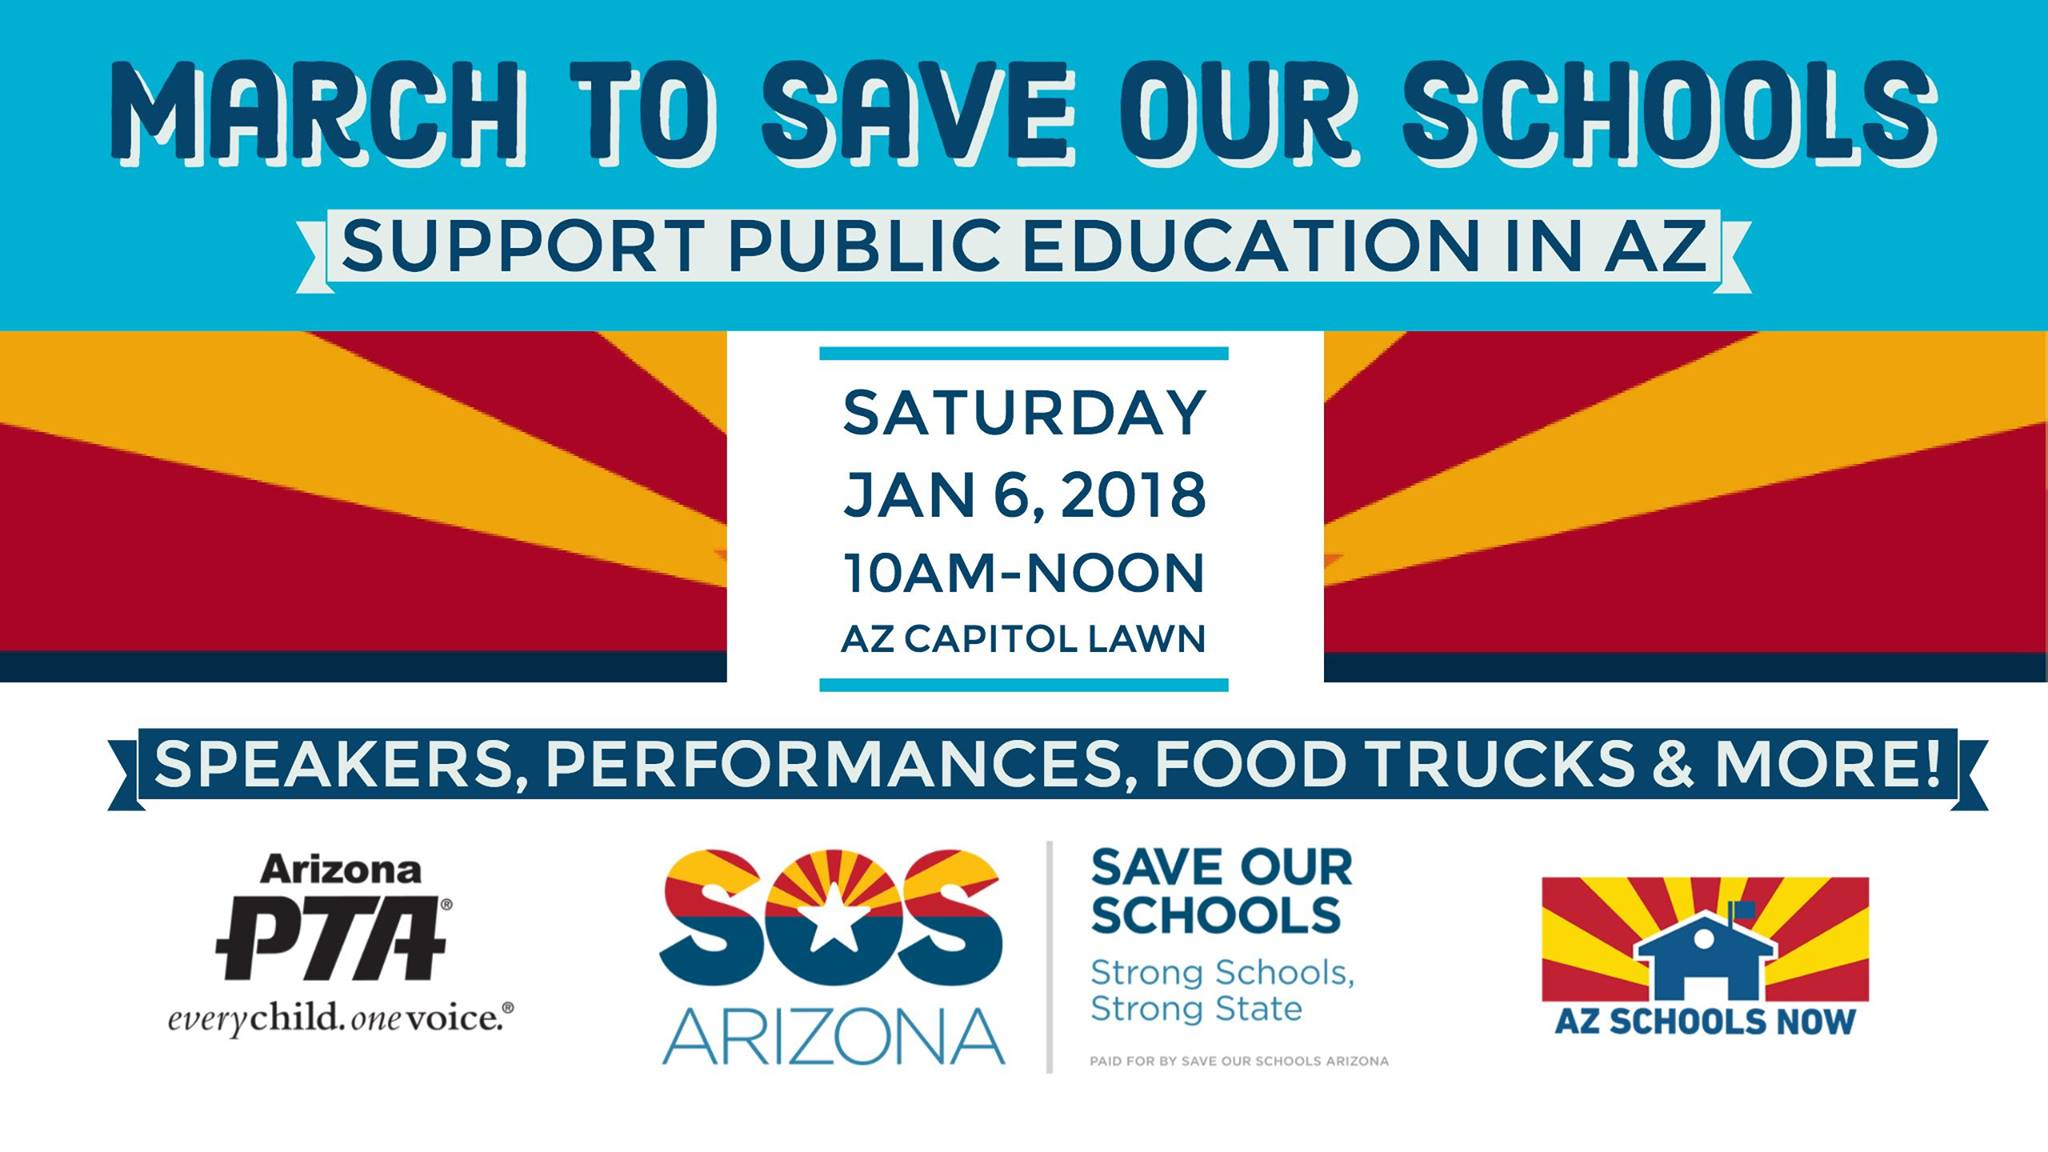 """:: <a href=""""https://www.washingtonpost.com/news/answer-sheet/wp/2017/08/10/arizona-school-voucher-expansion-put-on-hold-as-opponents-challenge-new-law/?utm_term=.3beed6b19dc2"""" target=""""_blank"""" rel=""""noopener noreferrer"""">  <h2></h2>  </a> 1"""